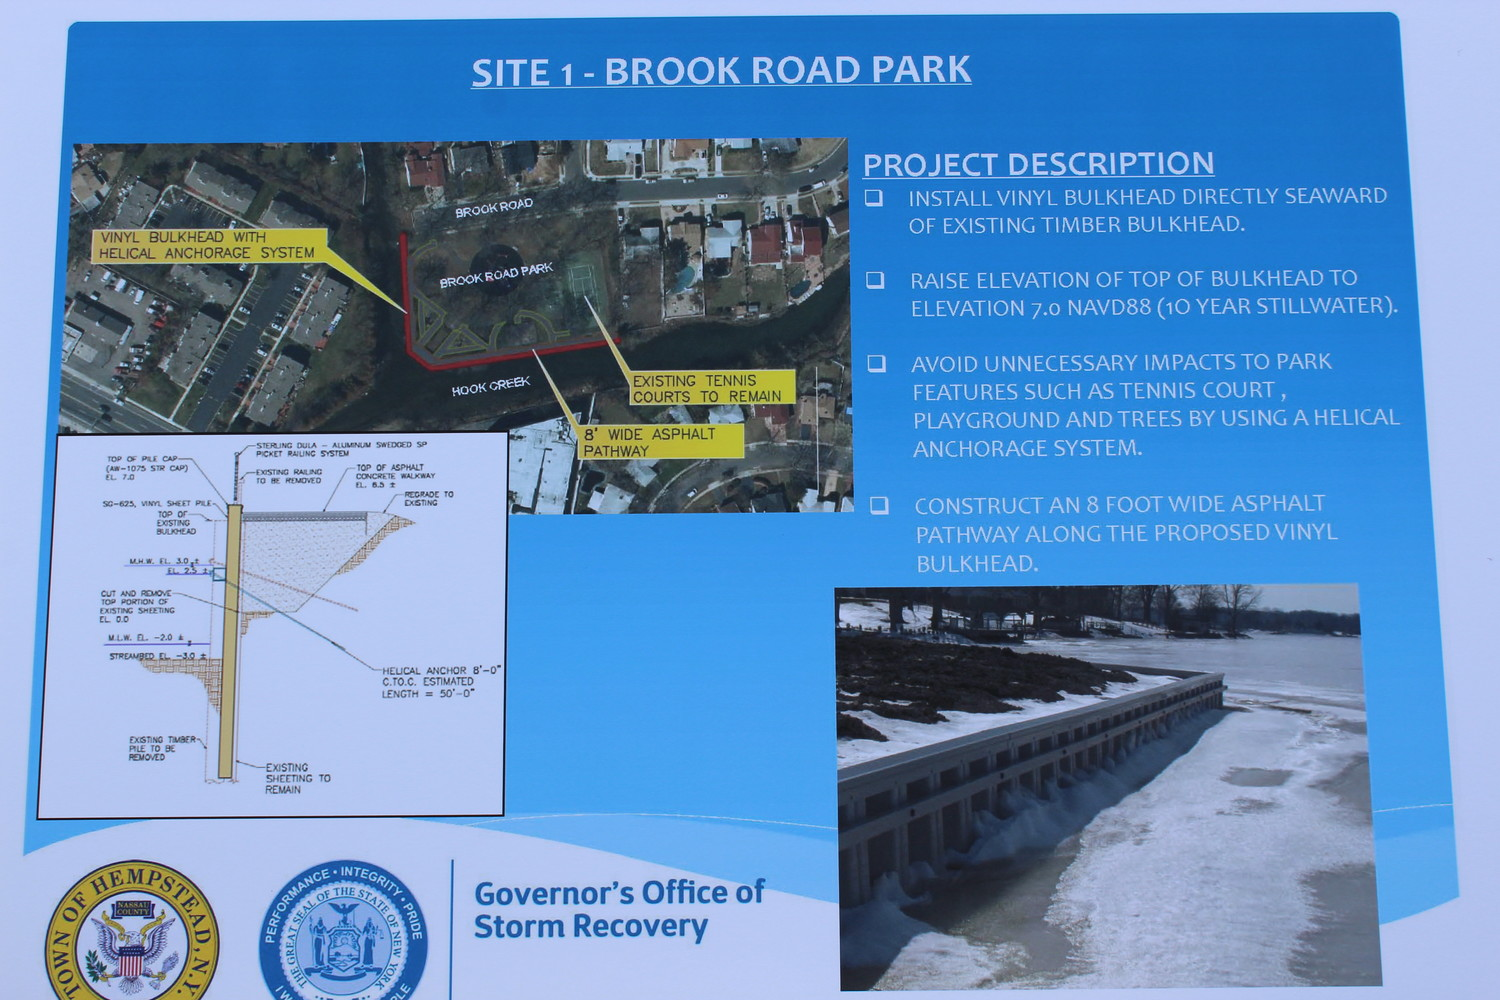 A sign detailed the scope of the Governor's Office of Storm Recovery's project.